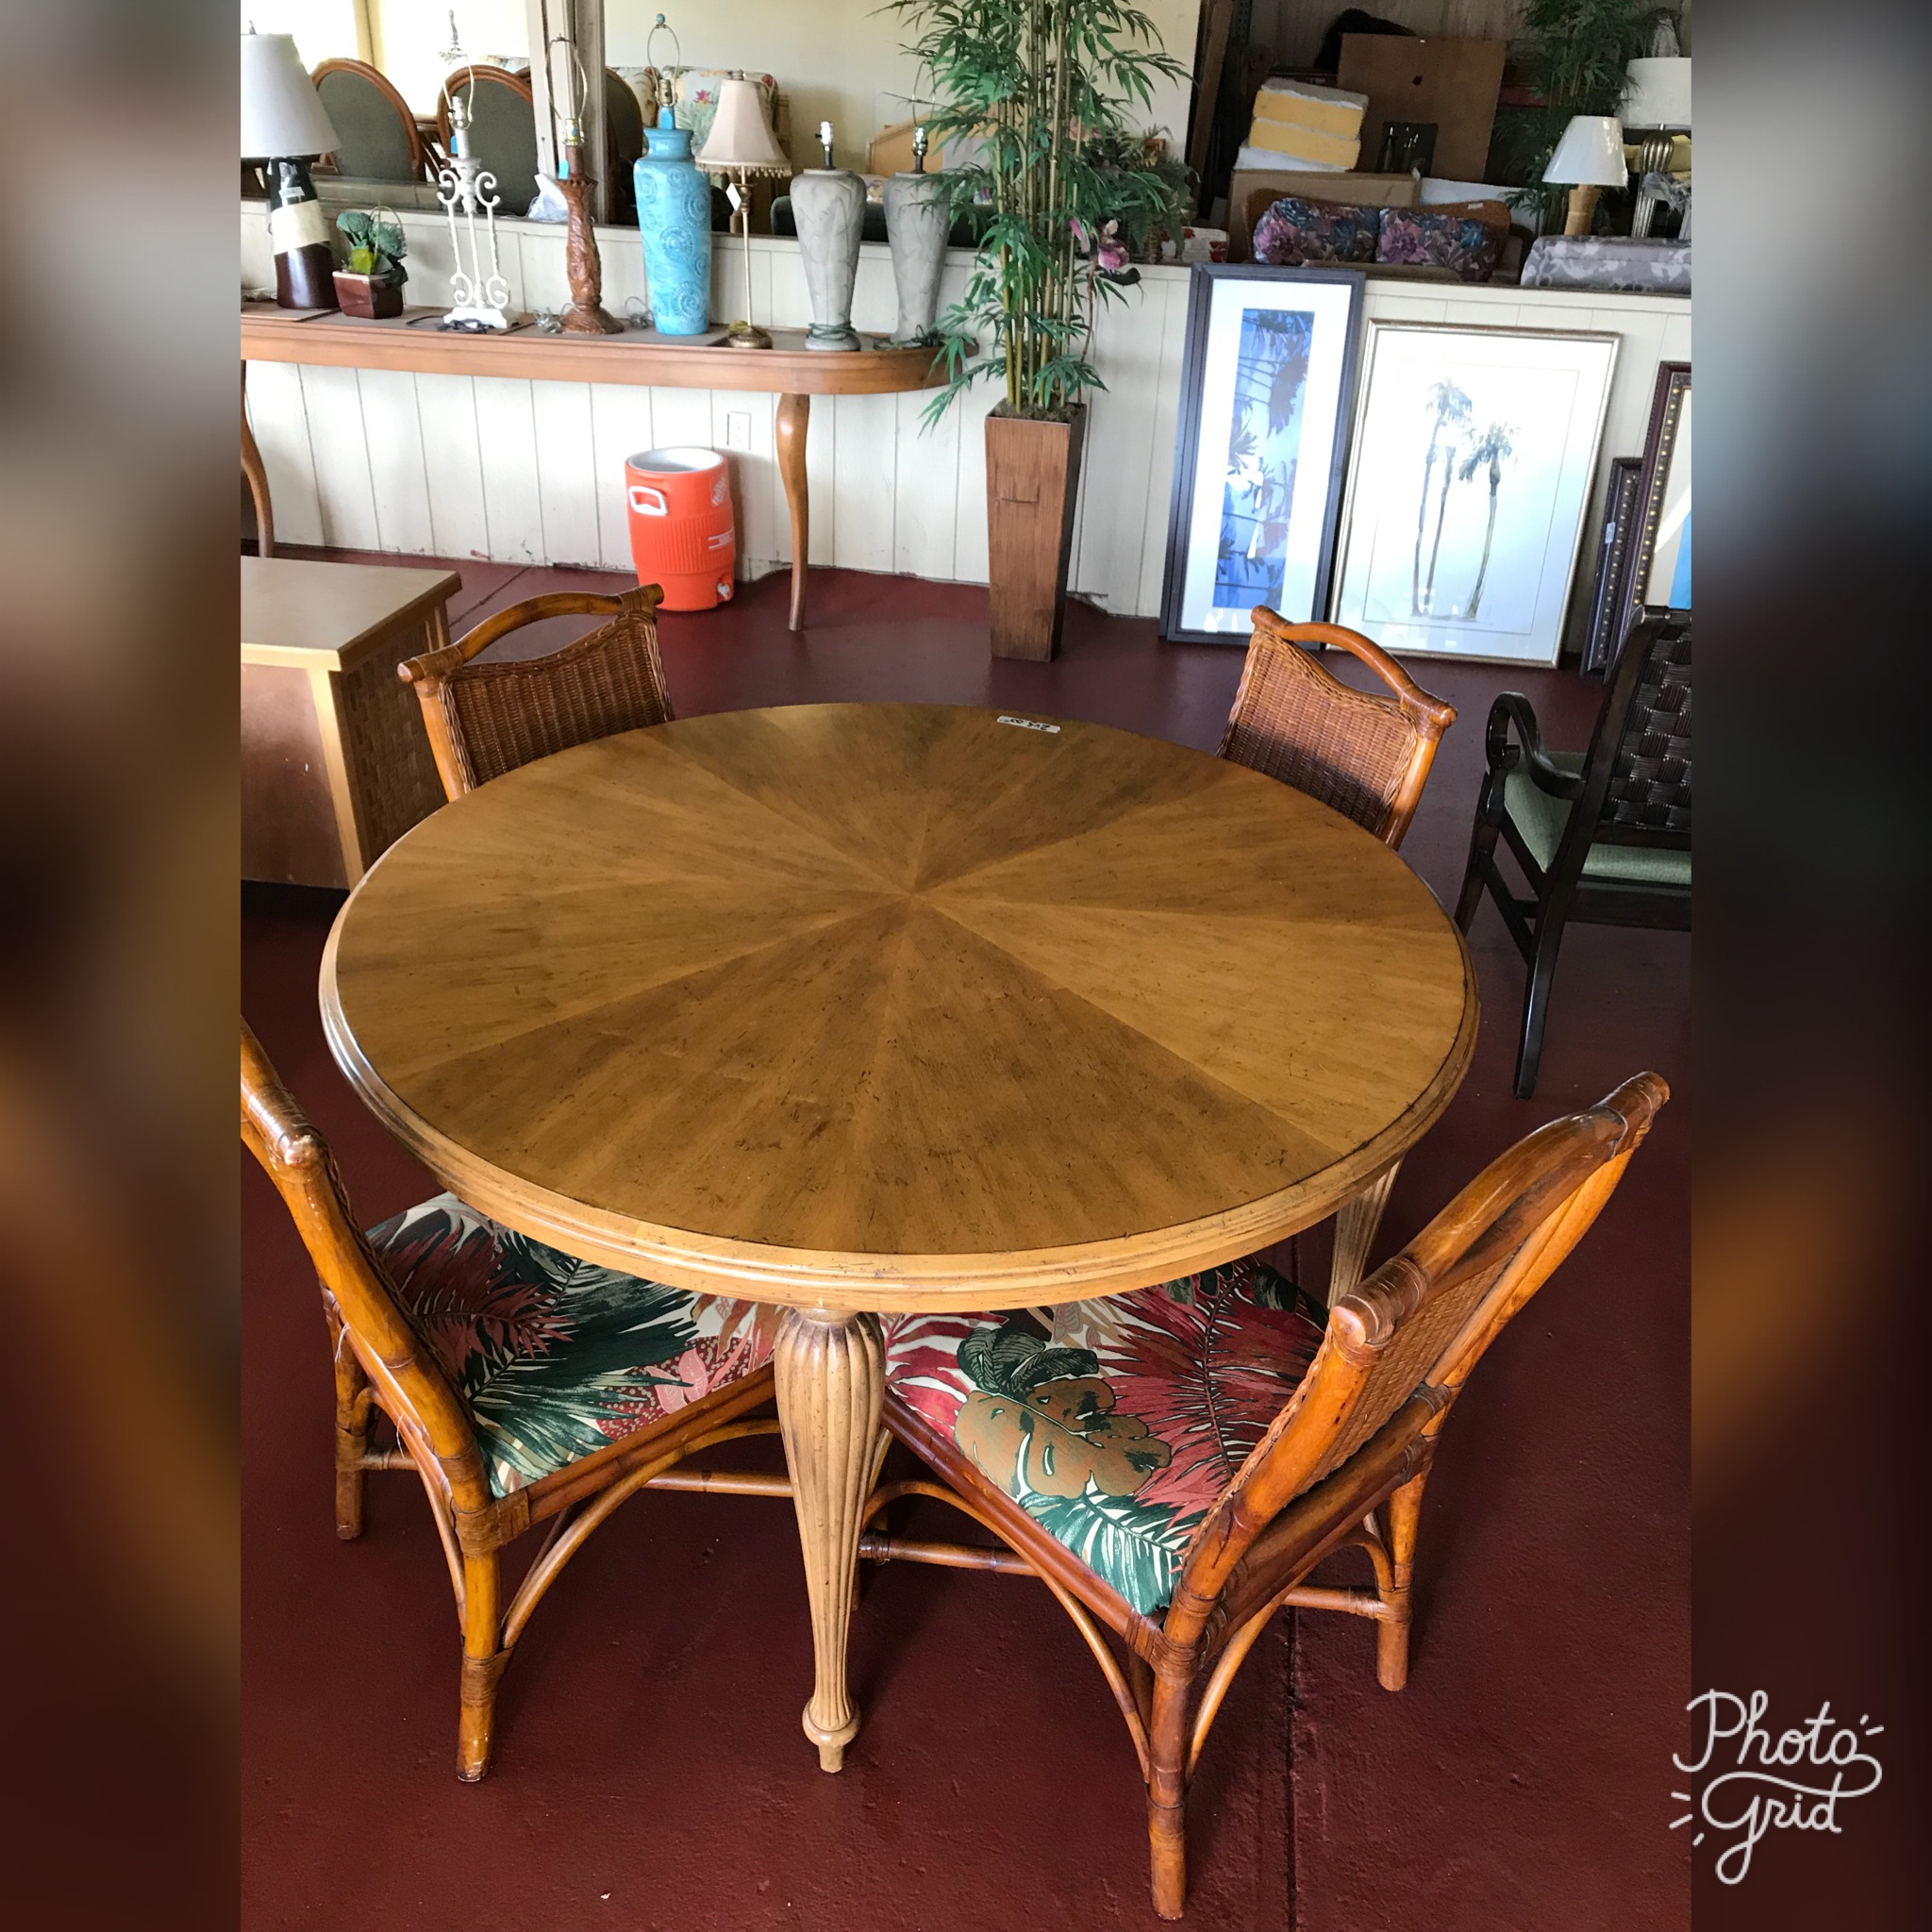 used dining room furniture | Quality Kauai Used Dining Room Furniture from Hotels